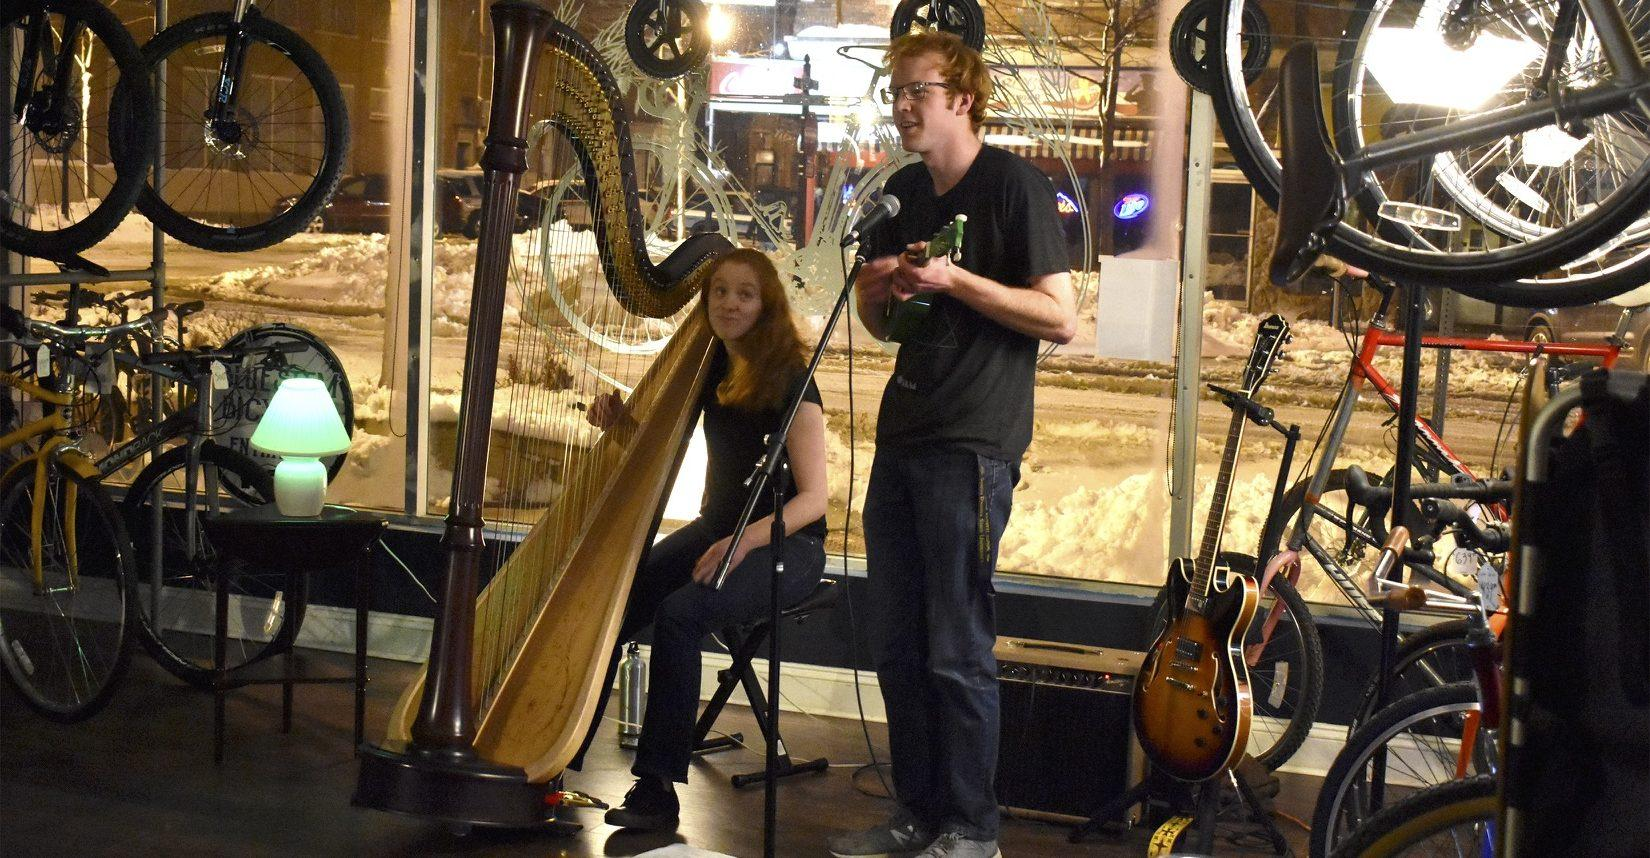 ABBY FULLENKAMP Tuthill Balloon Club's Mark and Ann McLaughlin perform one of Mark's original songs at their March 24 performance in the Blustem bike shop, downtown Brookings. The brother-sister duo started performing different shows together a few years ago.